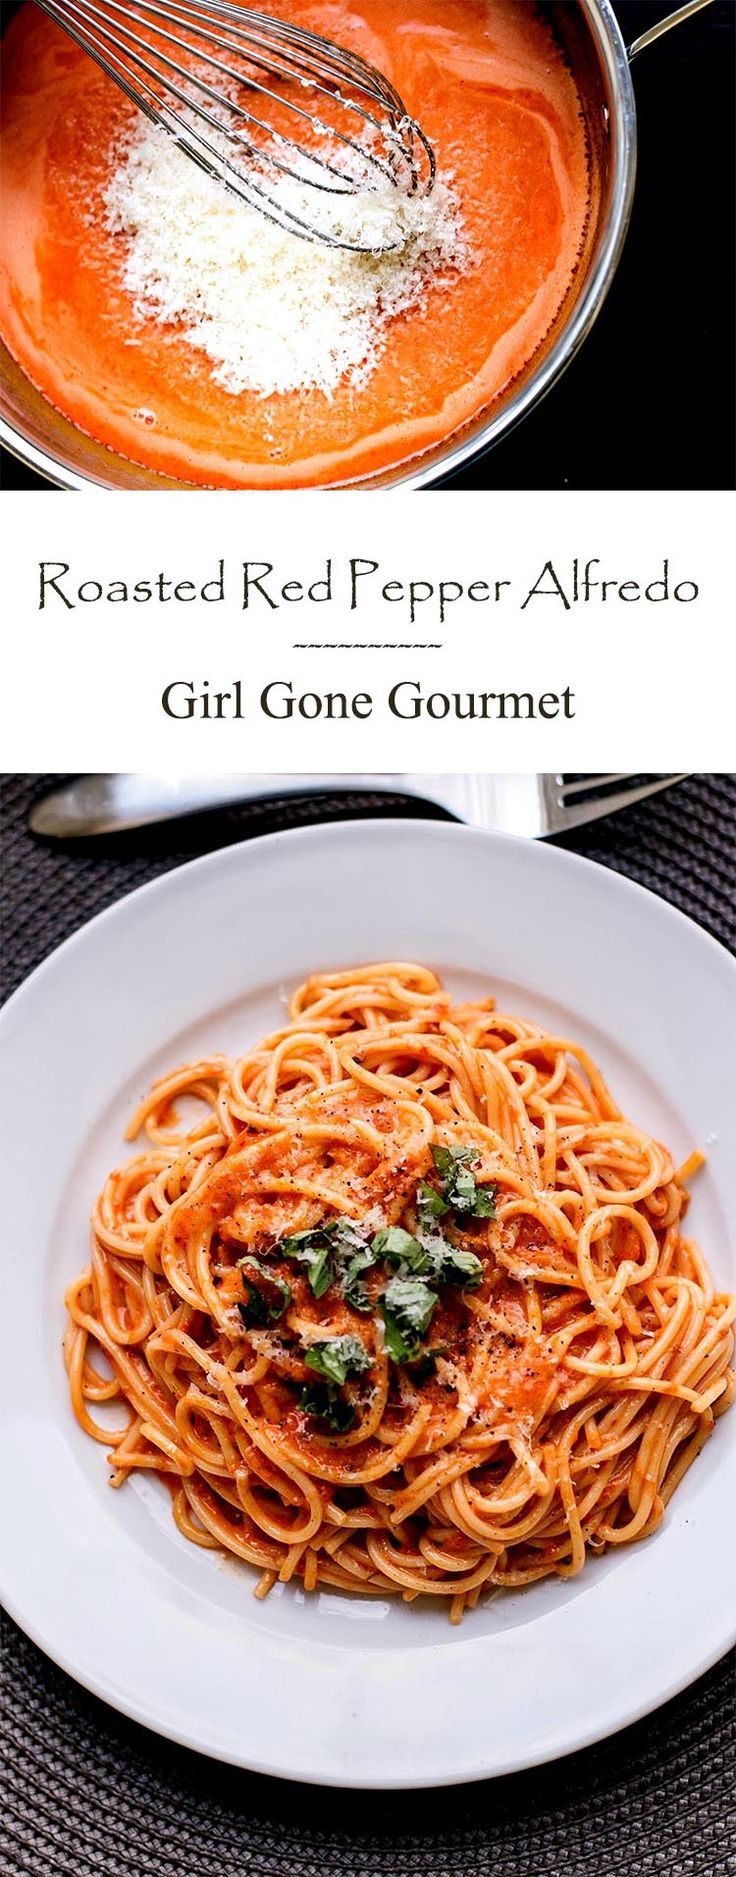 A smooth and creamy roasted red pepper alfredo sauce. So delicious!